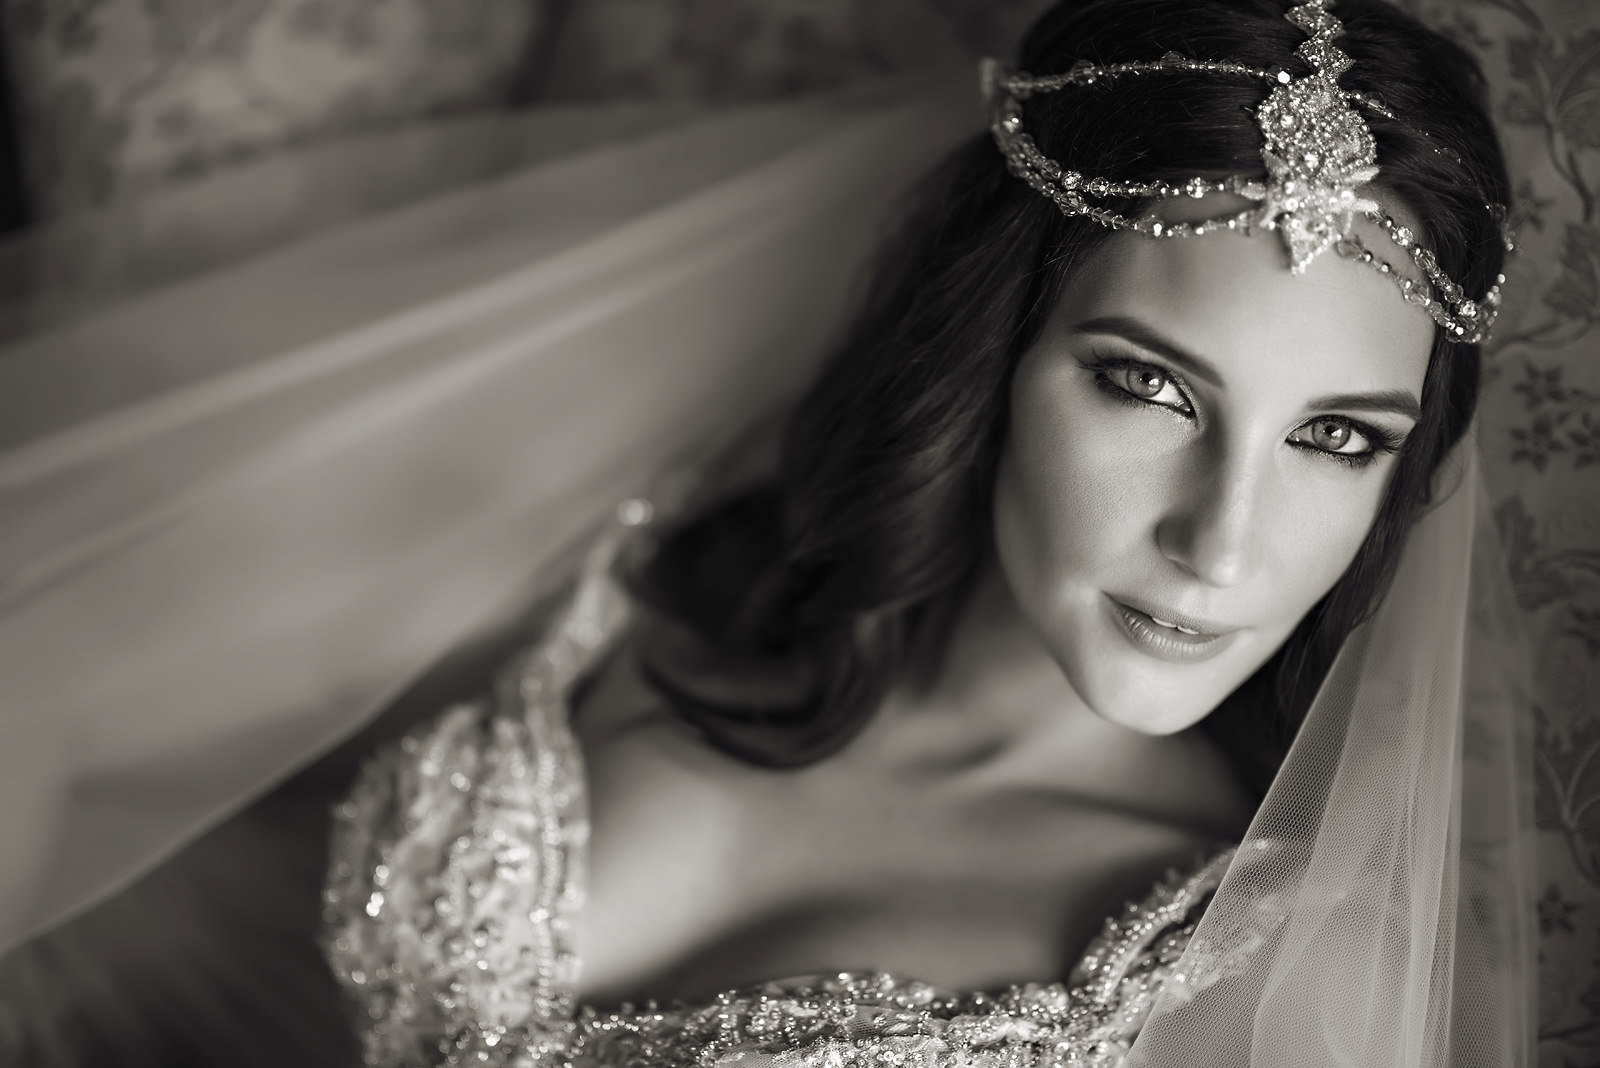 Bride with jewel crown looking out the window